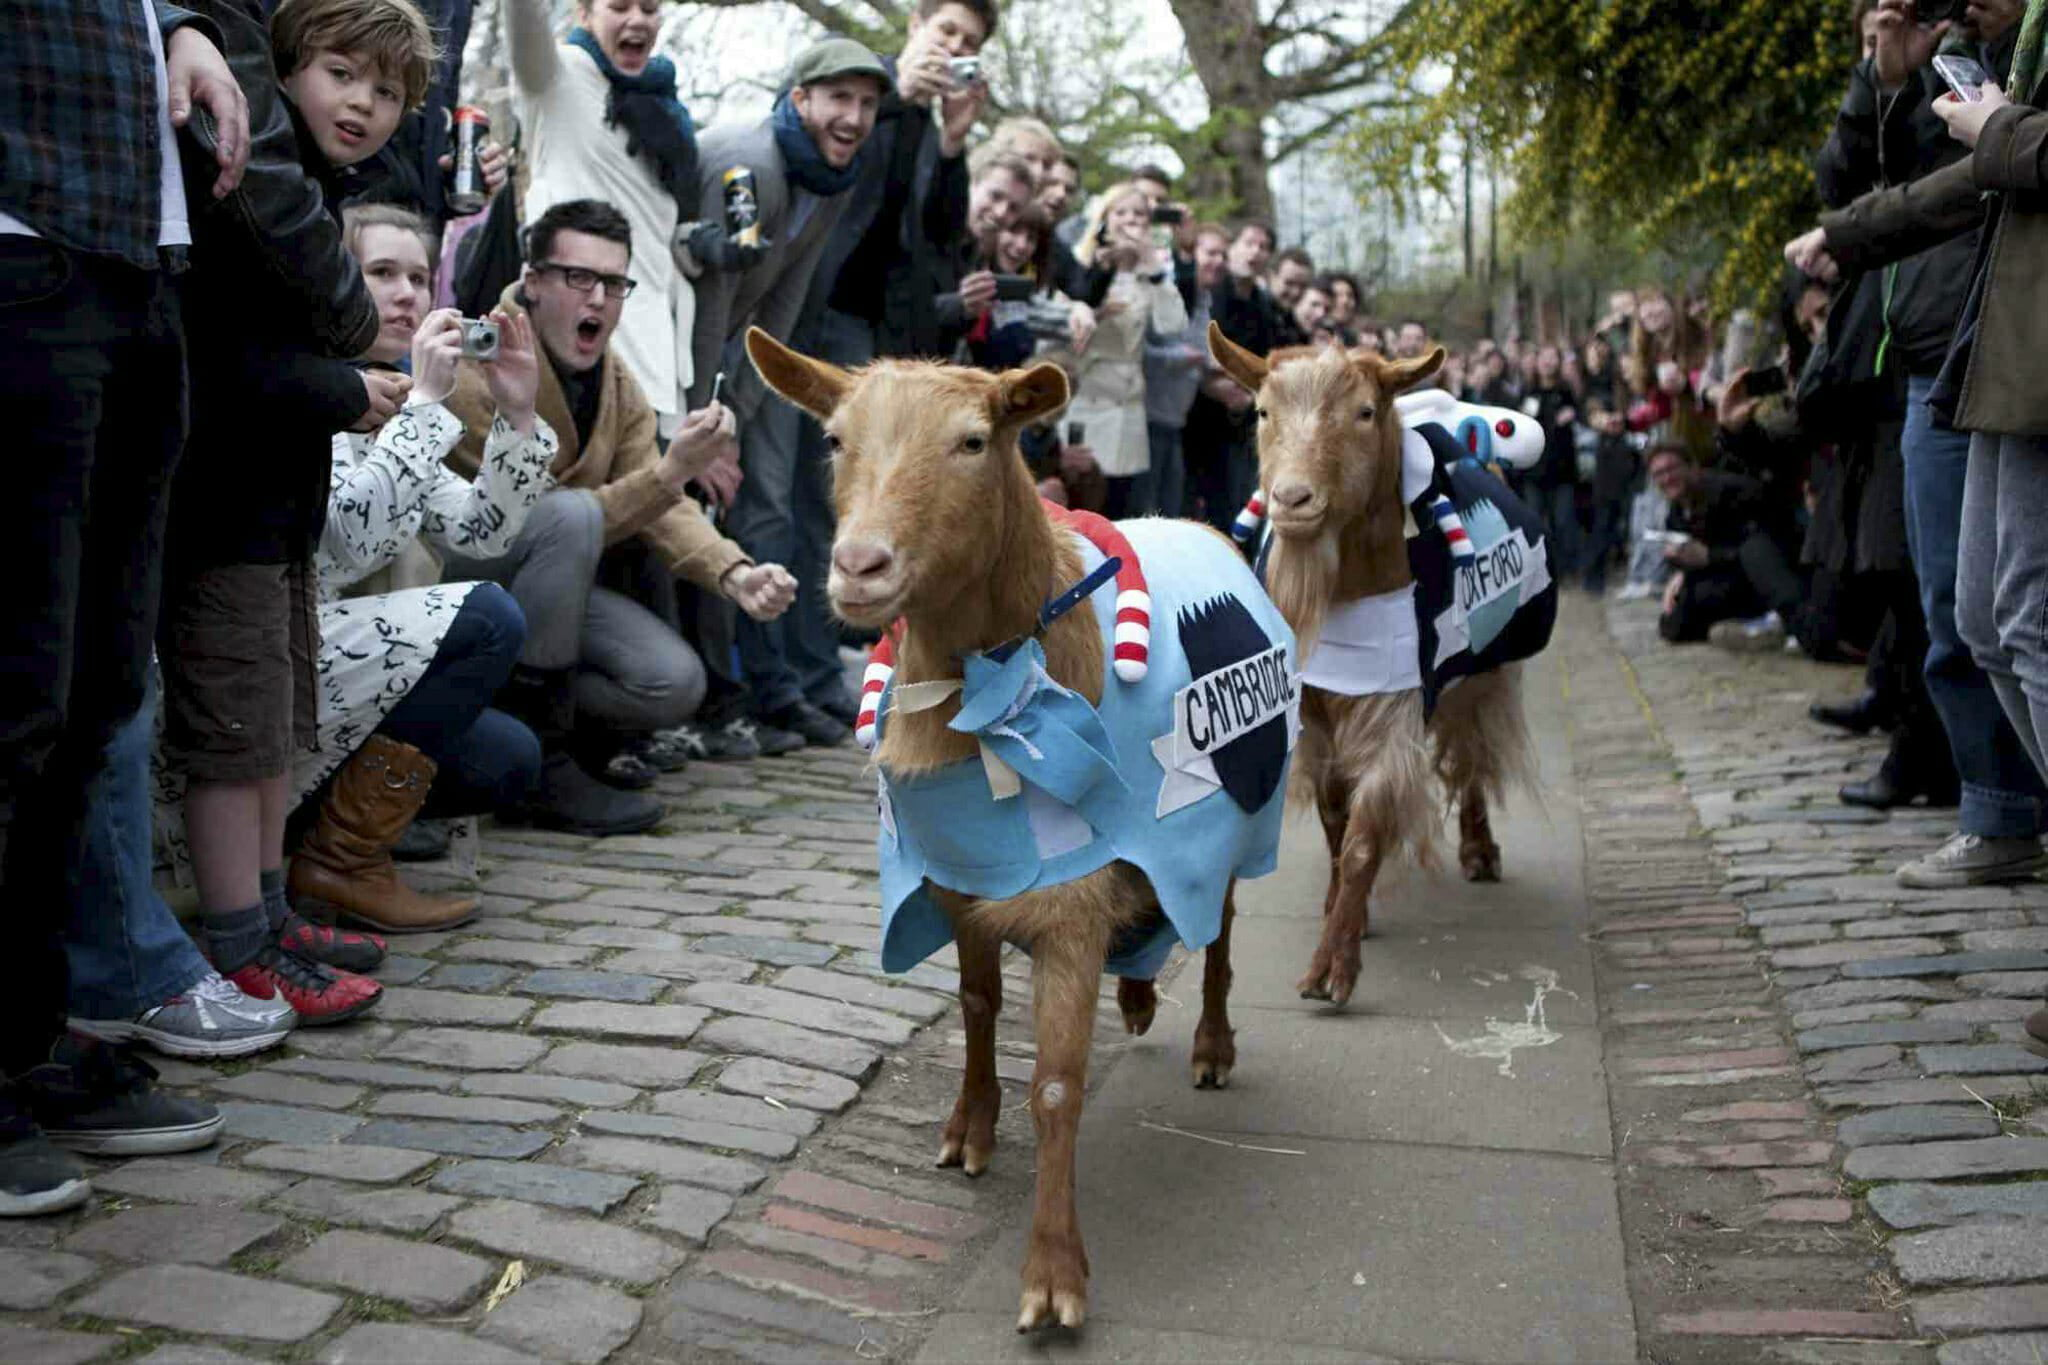 oxford cambridge goat race